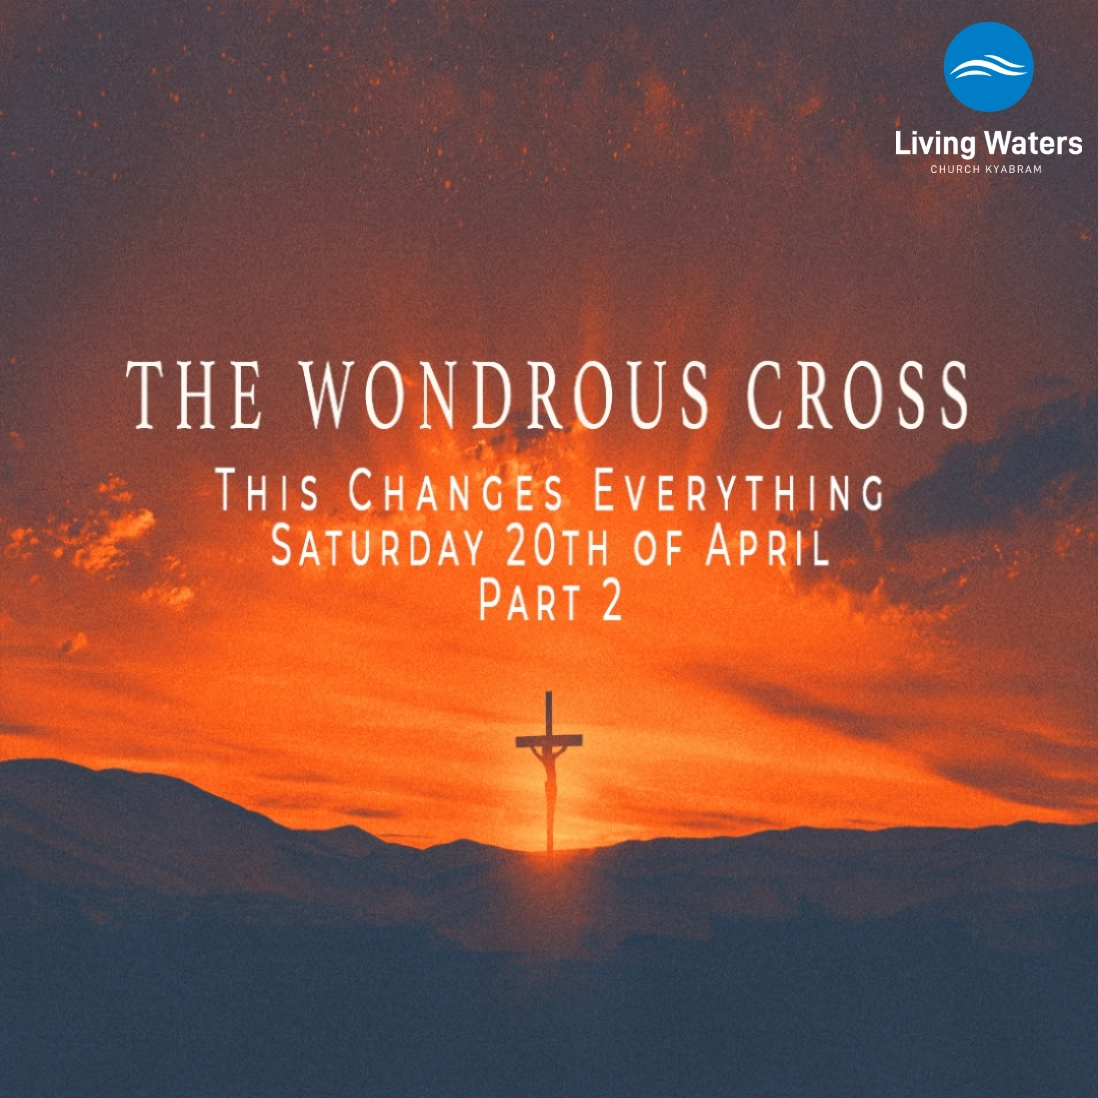 Every Place – Easter 2019 Part 2 The Wondrous Cross